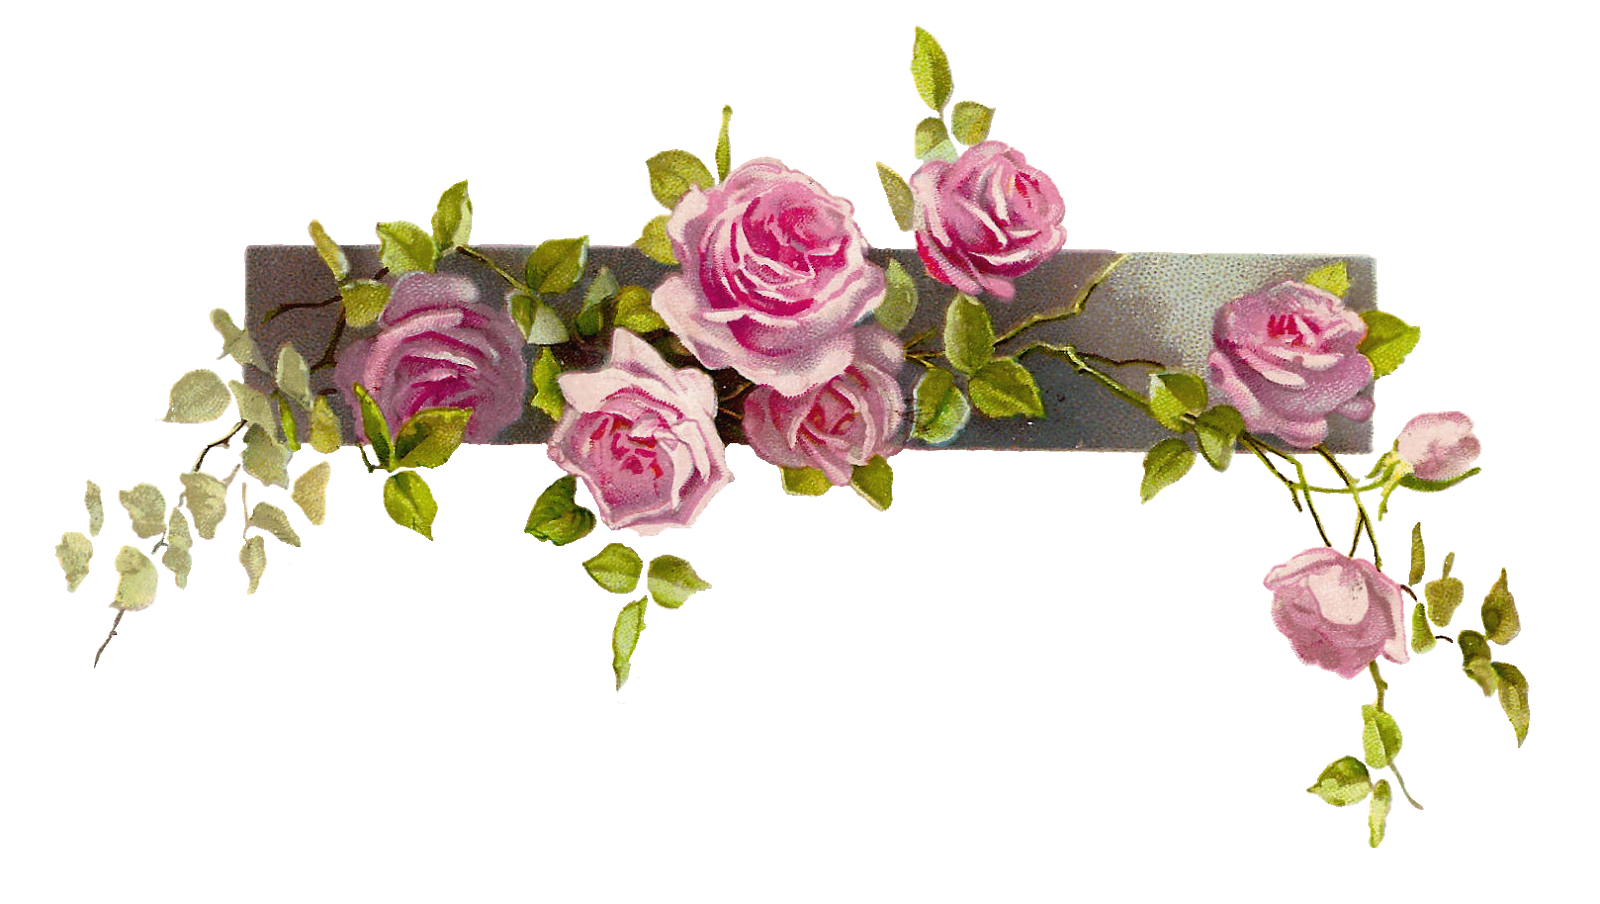 January flower clipart transparent library Antique Images: Free Flower Graphic: Vintage Pink Rose Clip Art ... transparent library